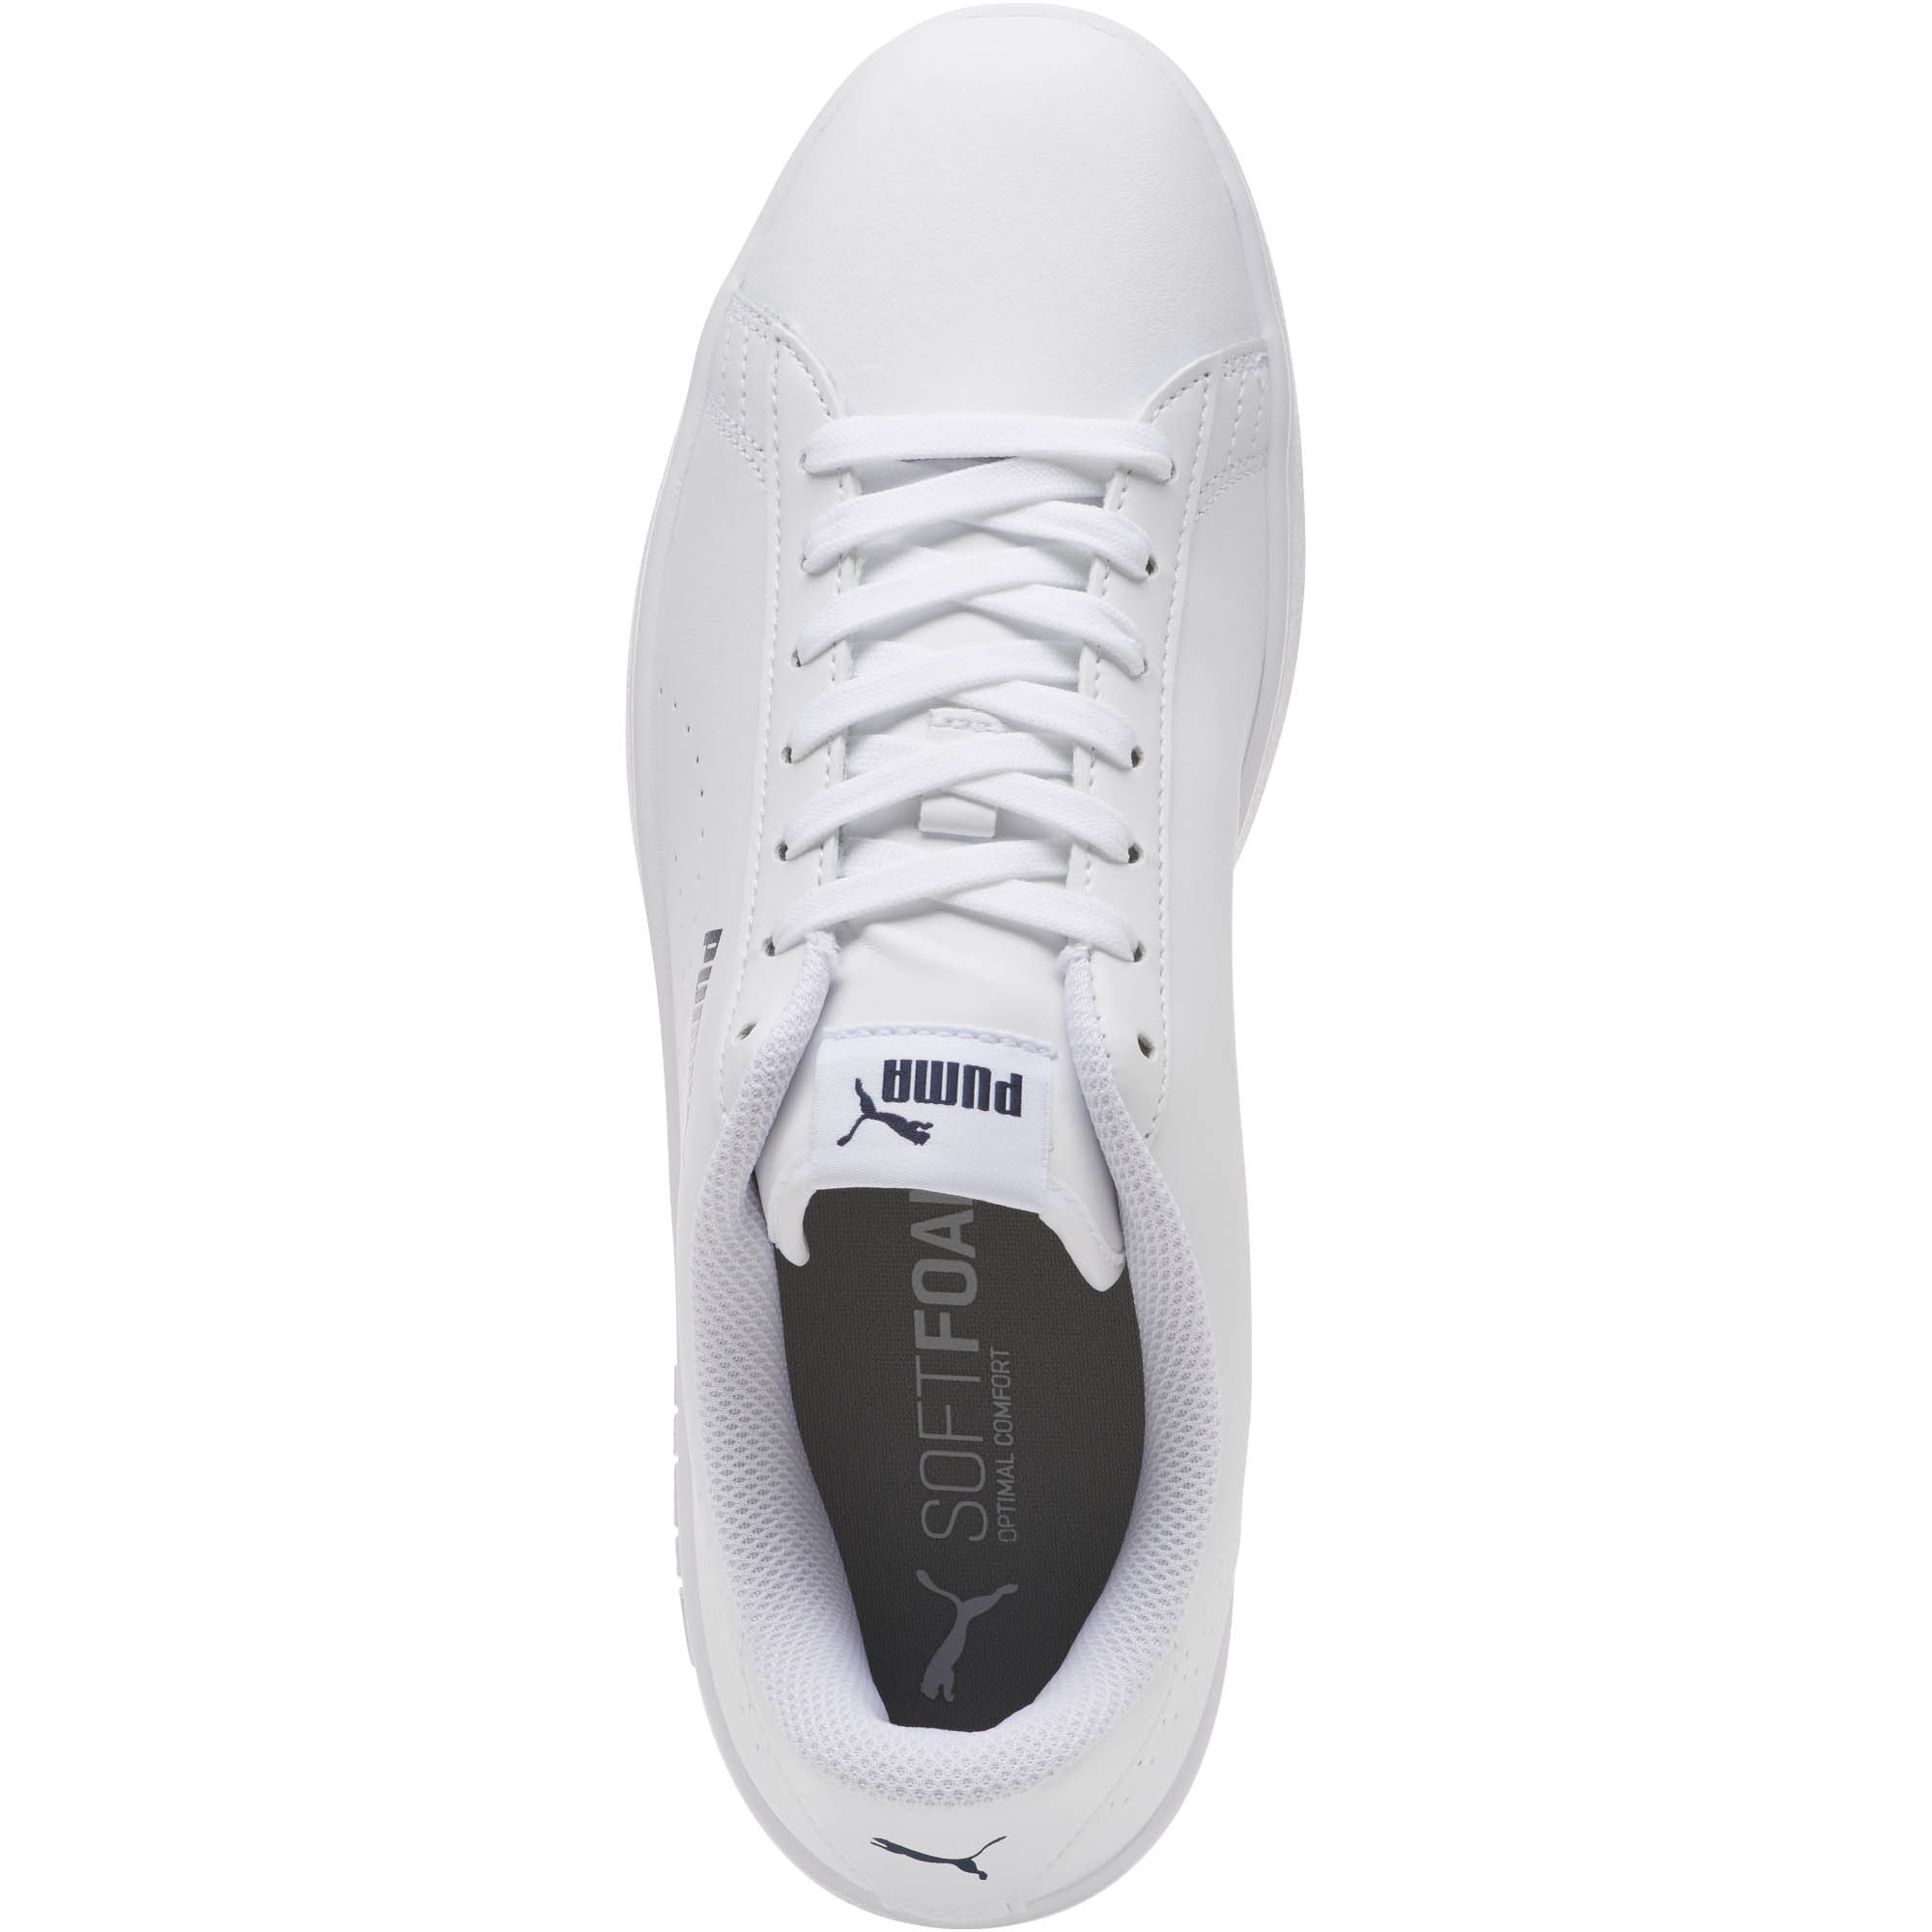 PUMA-PUMA-Smash-v2-Leather-Perf-Sneakers-Men-Shoe-Basics miniatura 6